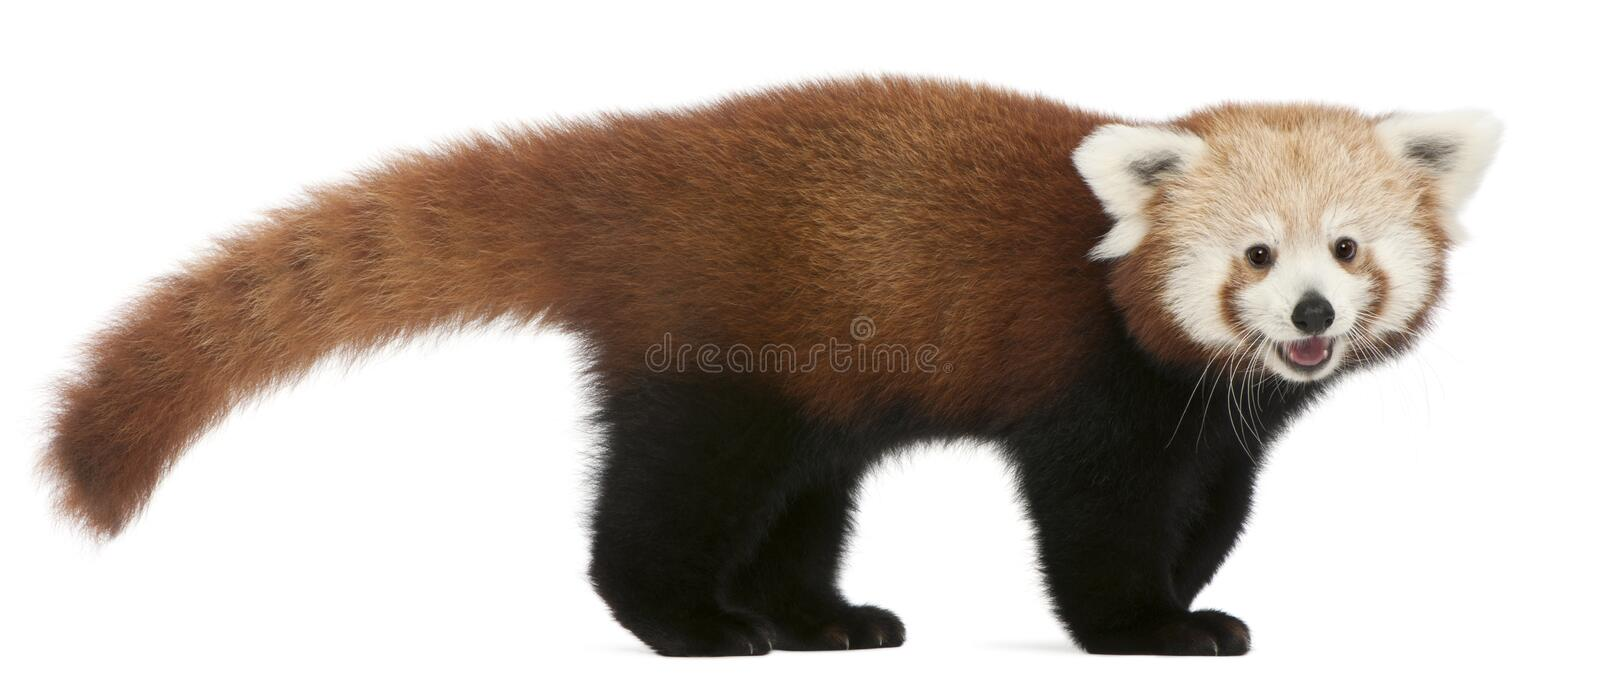 Young Red panda or Shining cat, Ailurus fulgens, 7 months old. In front of white background royalty free stock image